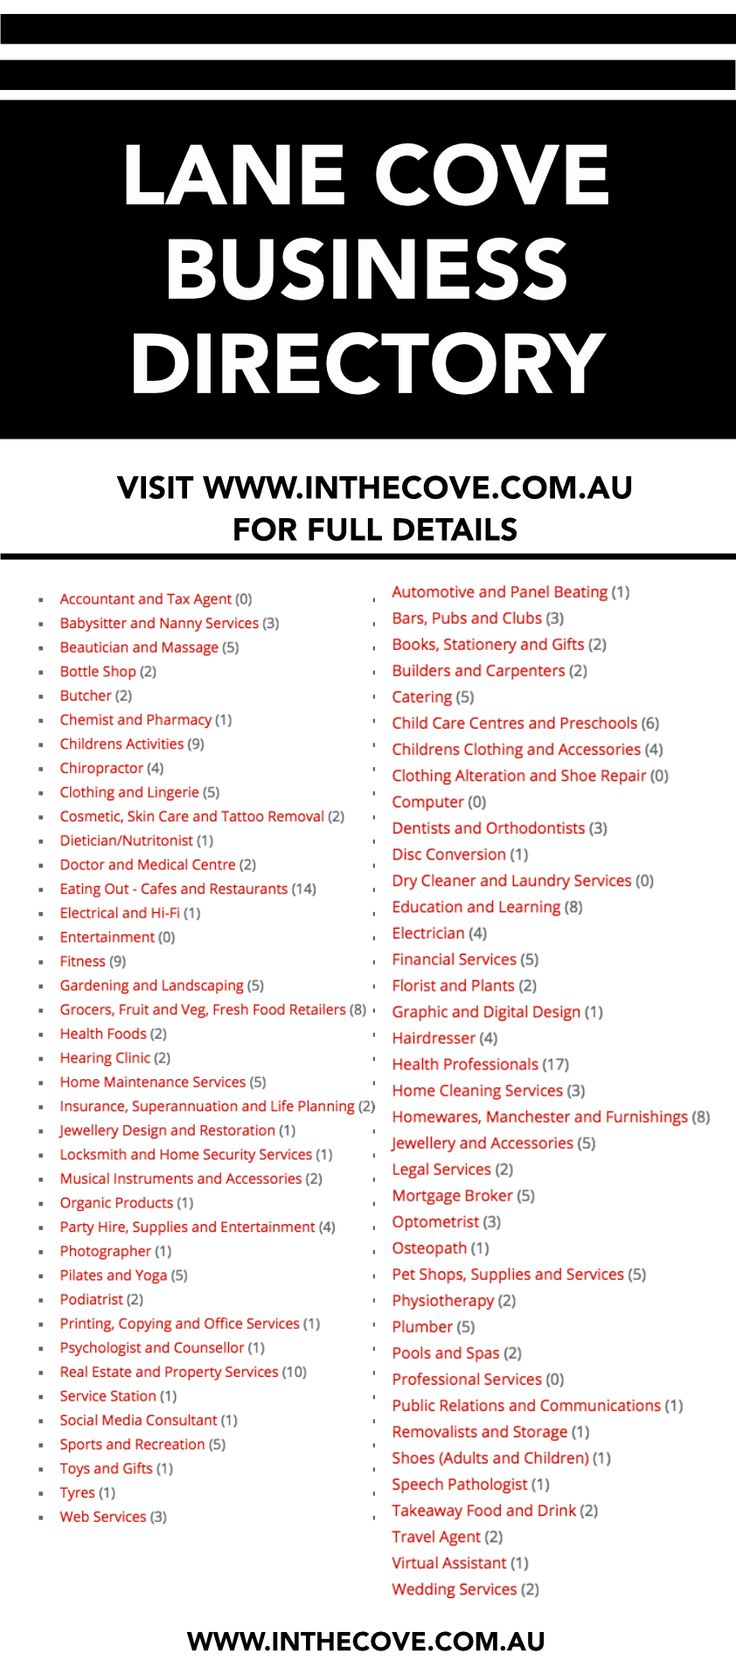 Lane Cove, Sydney Business Directory | At In the Cove, we encourage people to Be Local, Shop Local, Eat Local and Drink Local in Lane Cove.  Please use our directory below to find information about local businesses and services.Cafes, Restaurants, Shopping, Beauty, Food catering, bars, Florists, realestate, haridressers, childcare centres & activities, Fitness, yoga, pilates, Clothing, Grocers, Homewares, gardening, chirporators, dentists, party hire, cakes.... www.inthecove.com.au